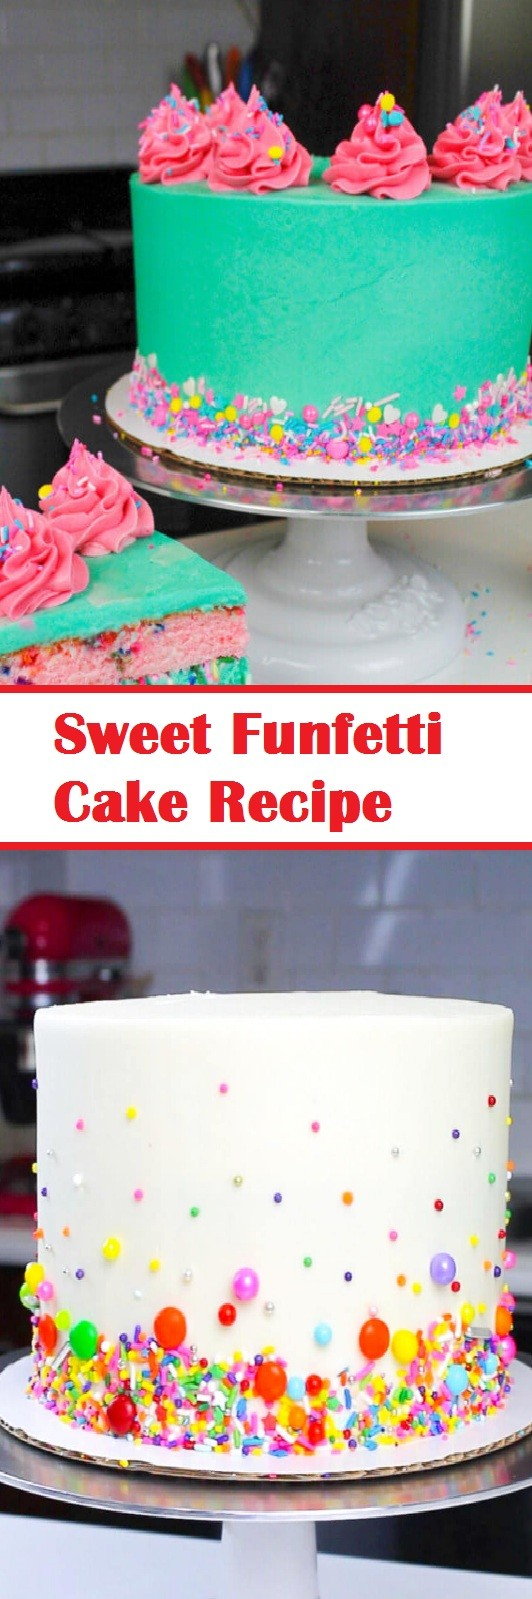 Sweet Funfetti Cake Recipe